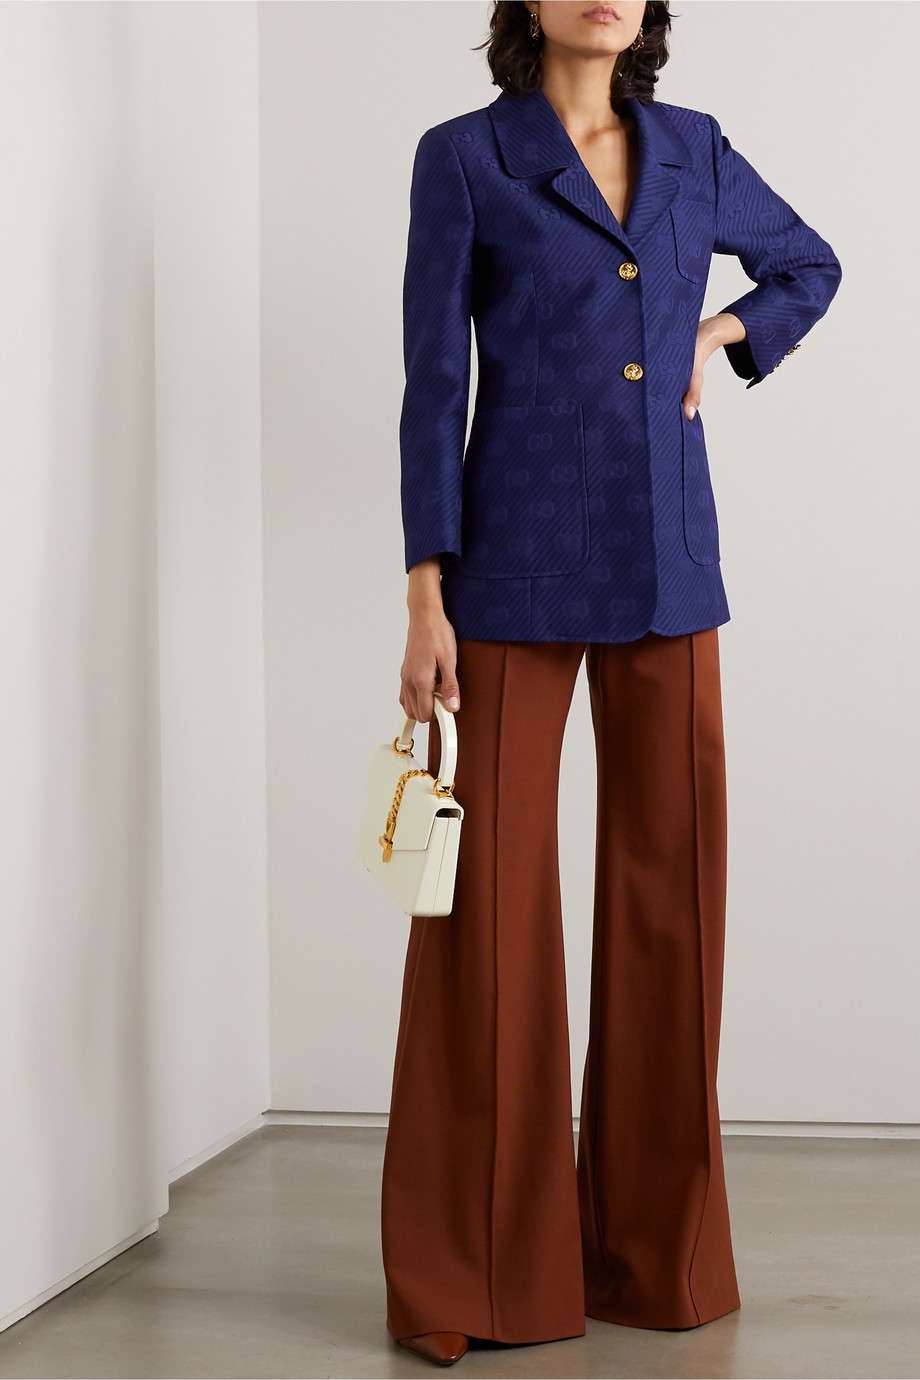 Gucci Appliquéd wool and silk-blend jacquard blazer